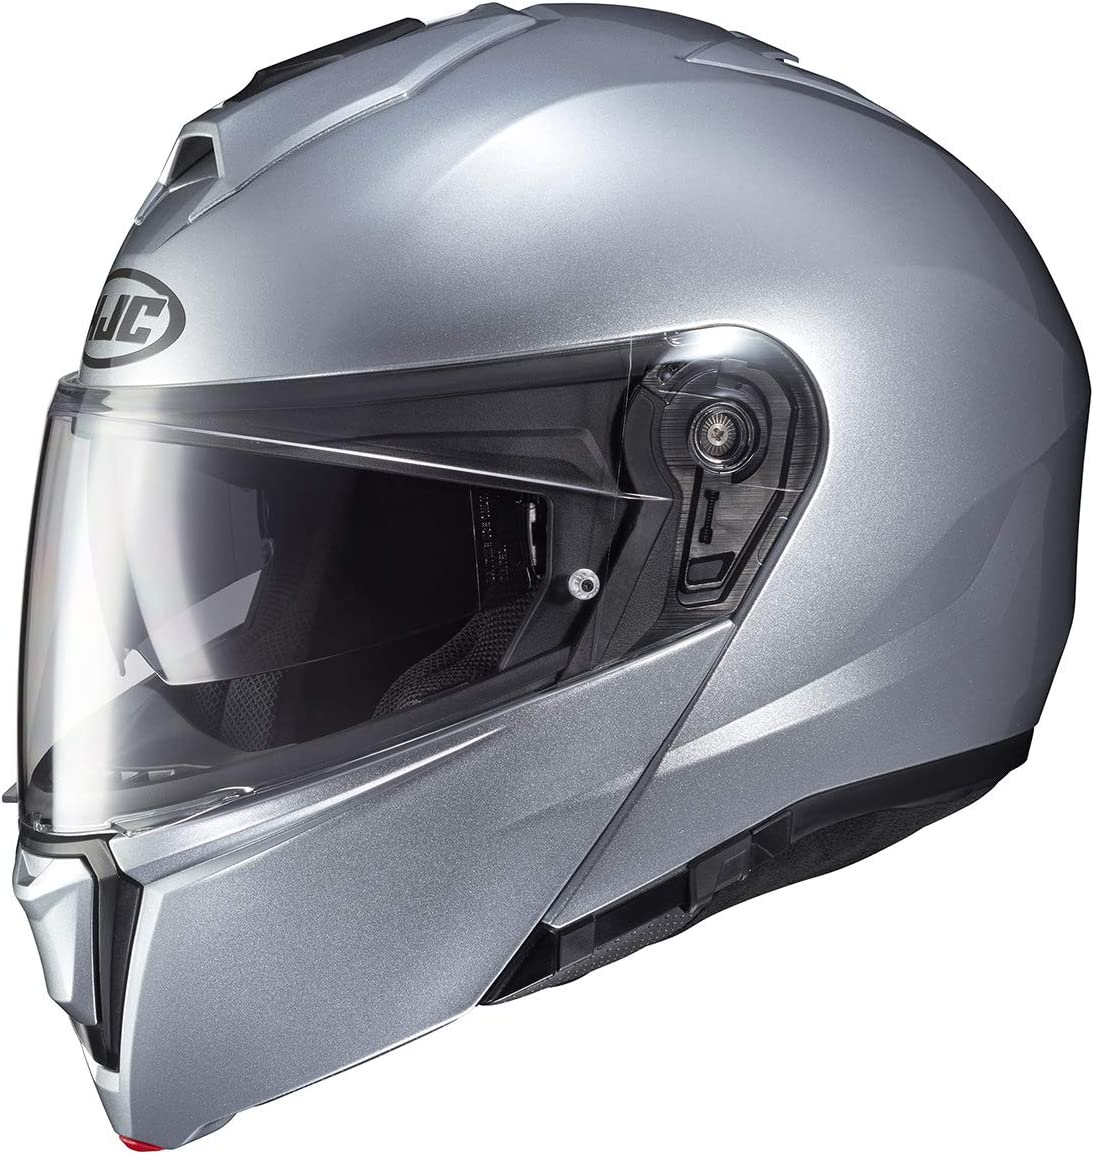 HJC i90 Modular Motorcycle 4X-Large Helmet safety Silver Max 45% OFF